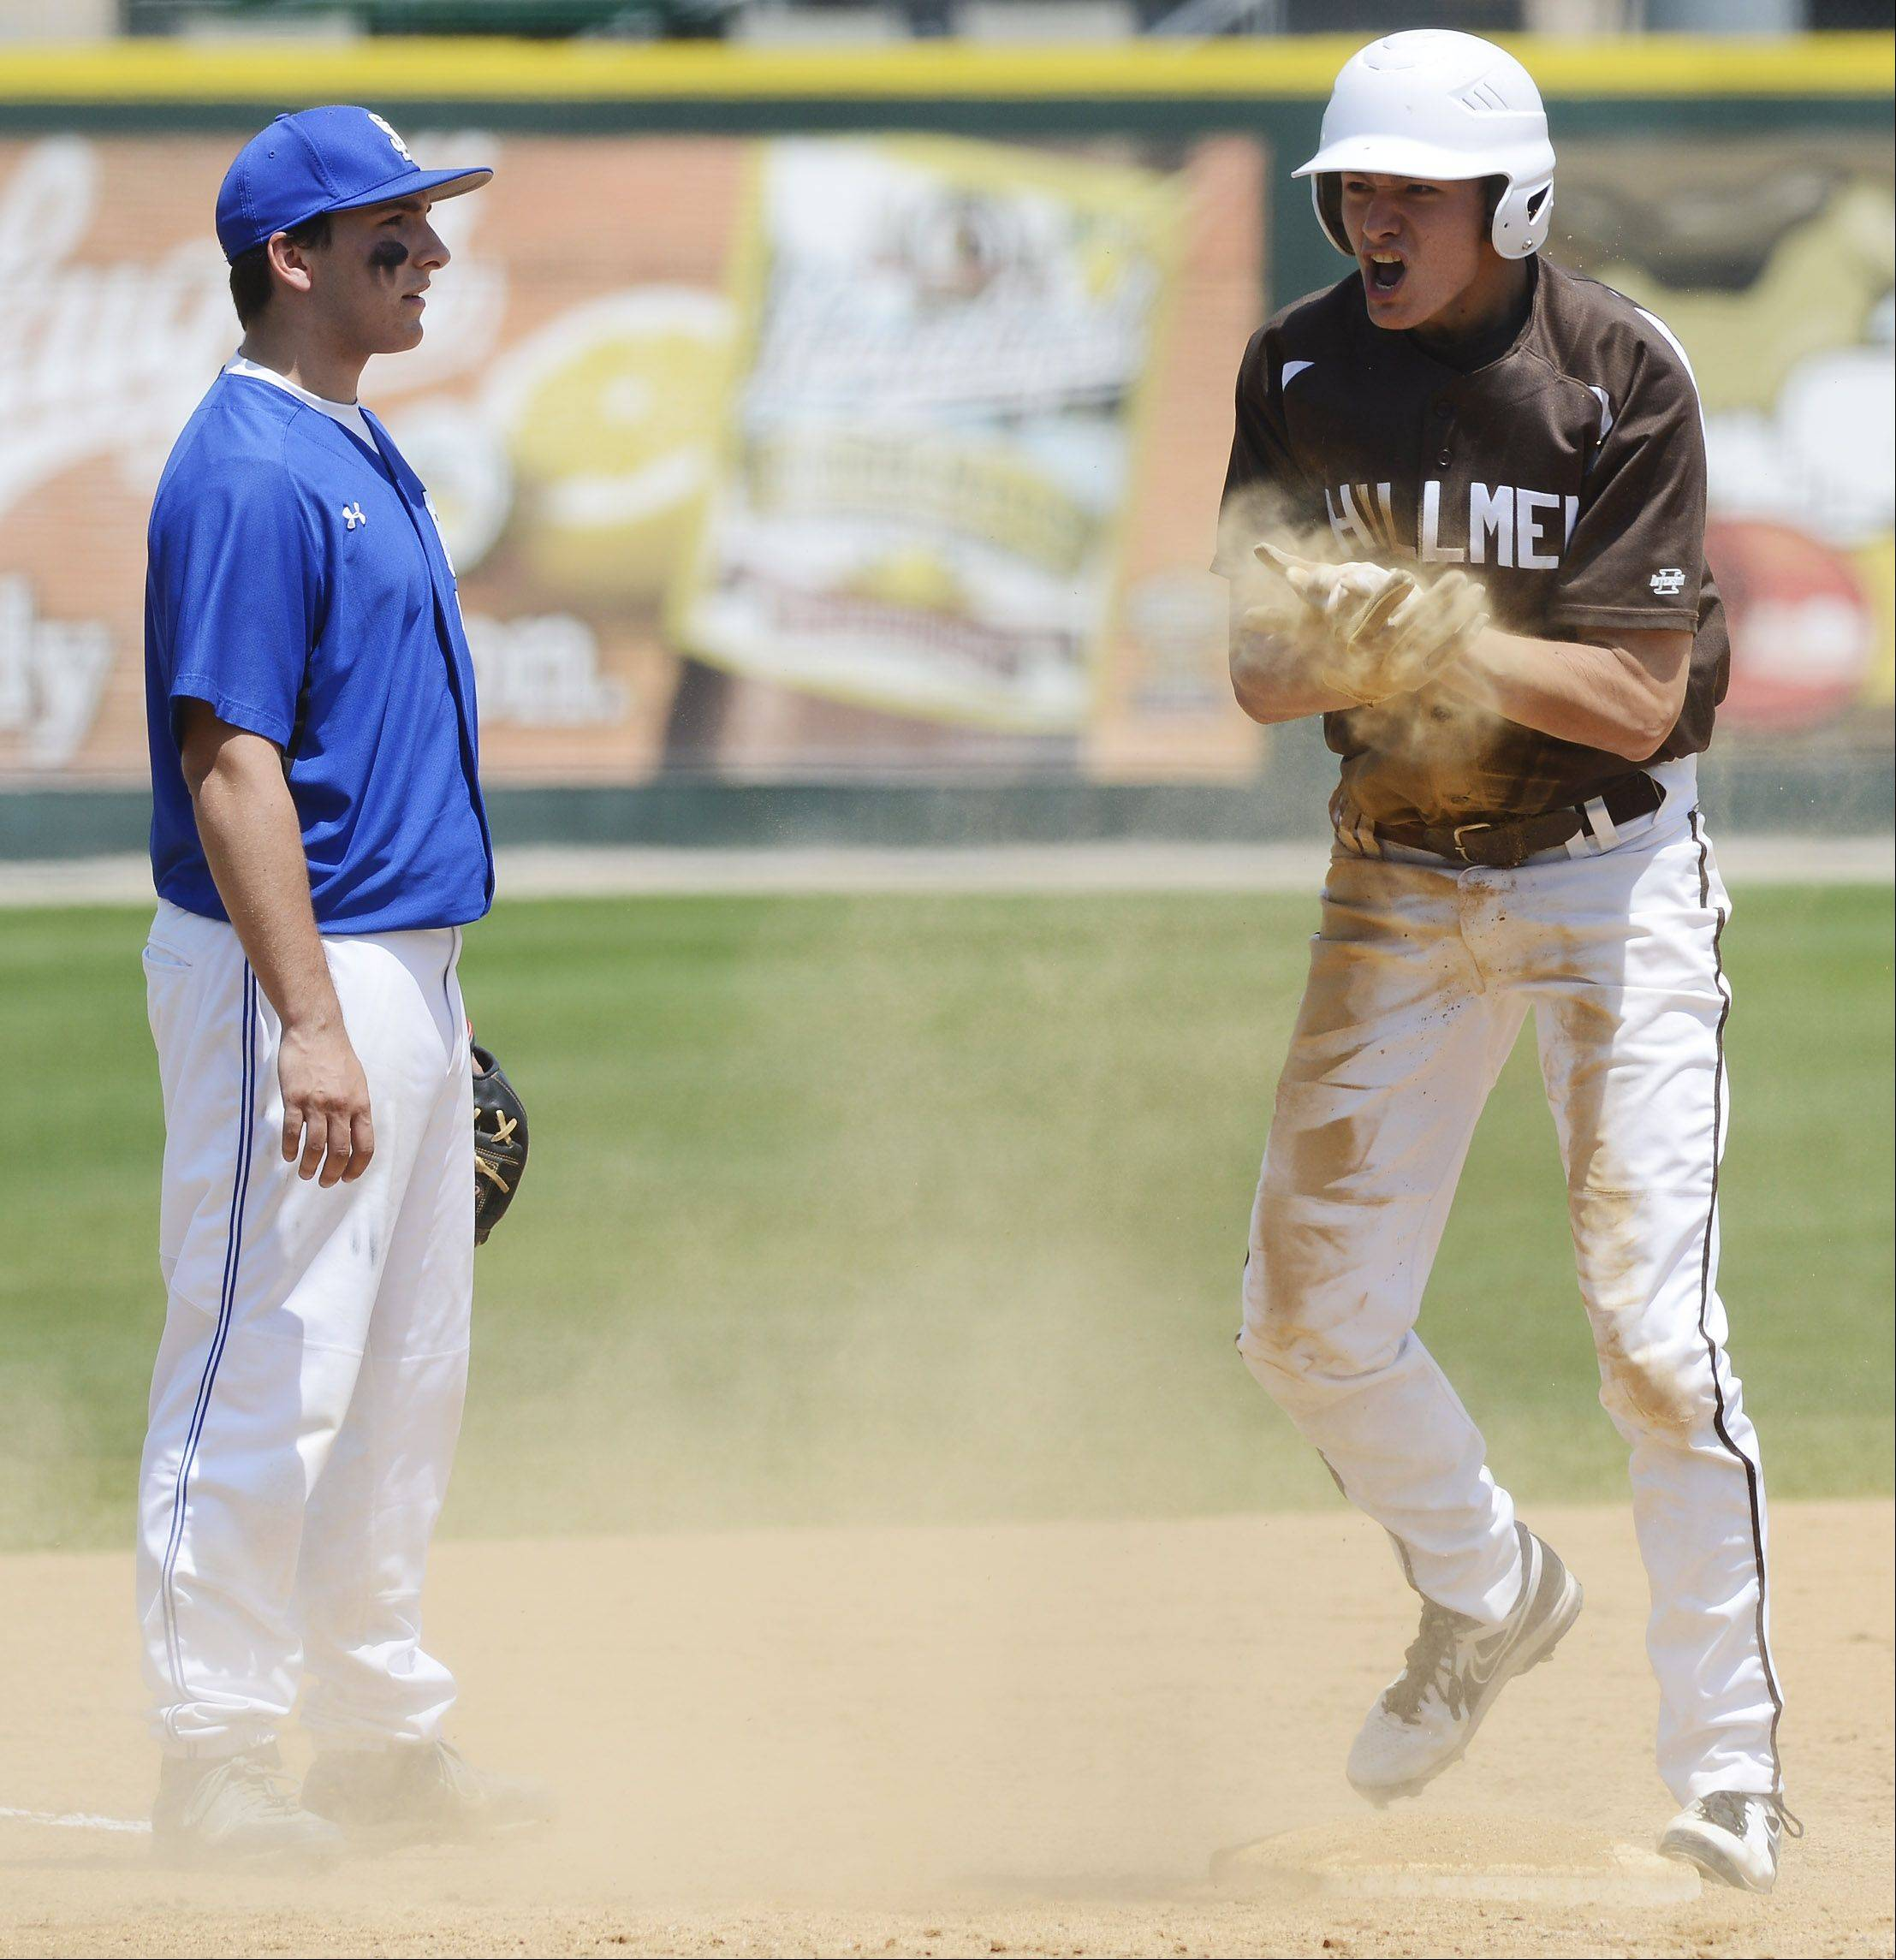 Joliet Catholic's John Kalisik celebrates his fourth inning triple as St. Francis third baseman Chris Smith stands beside the base during the Class 3A state baseball championship game at Silver Cross Field in Joliet Saturday.